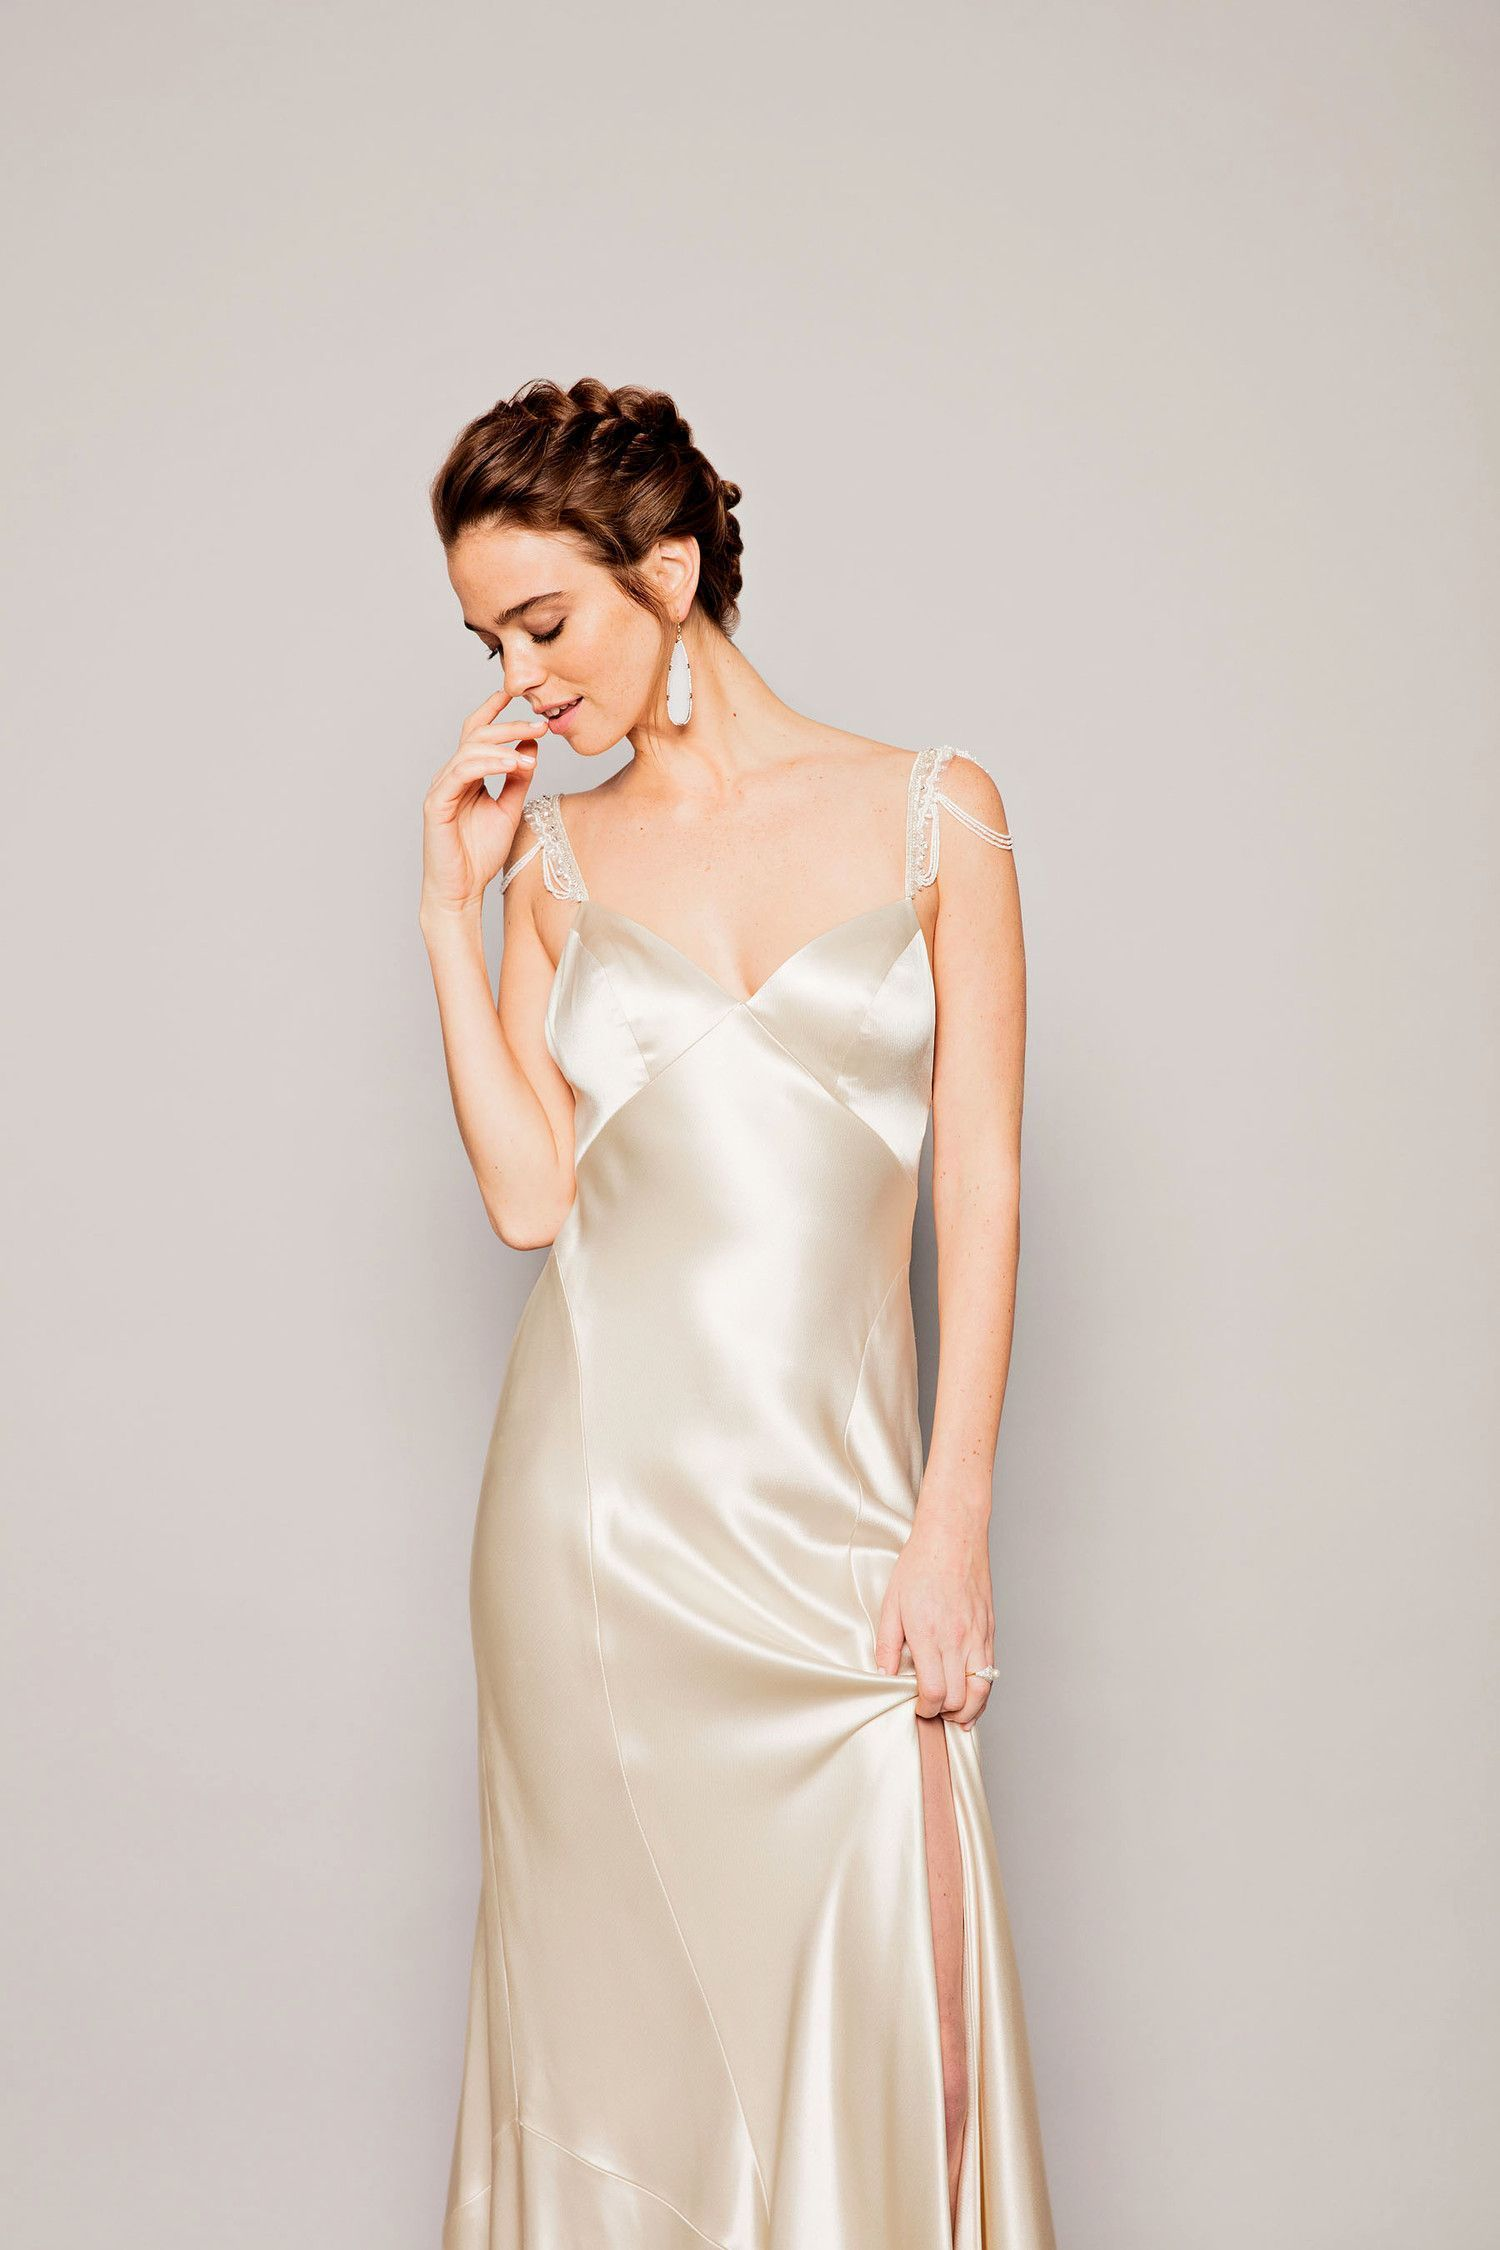 Hello, gorgeous. If a sophisticated affair is on your calendar, slip into Watters' '40s-inspired charmeuse Geneva gown with crystal- and pearl-beaded Keane straps. A loose braid only adds to the romance.    The Details: Watters Geneva gown and Keane straps, gown, $2,225; and straps, $380, Lovely Bride, 626-345-5828. Sylva & Cie agate drop earrings, $13,750, Stanley Korshak, Dallas, 214-871-3600. Mateo New York diamond-and-pearl ring, $3,250, mateonewyork.com. #loosebraids Hello, gor #loosebraids